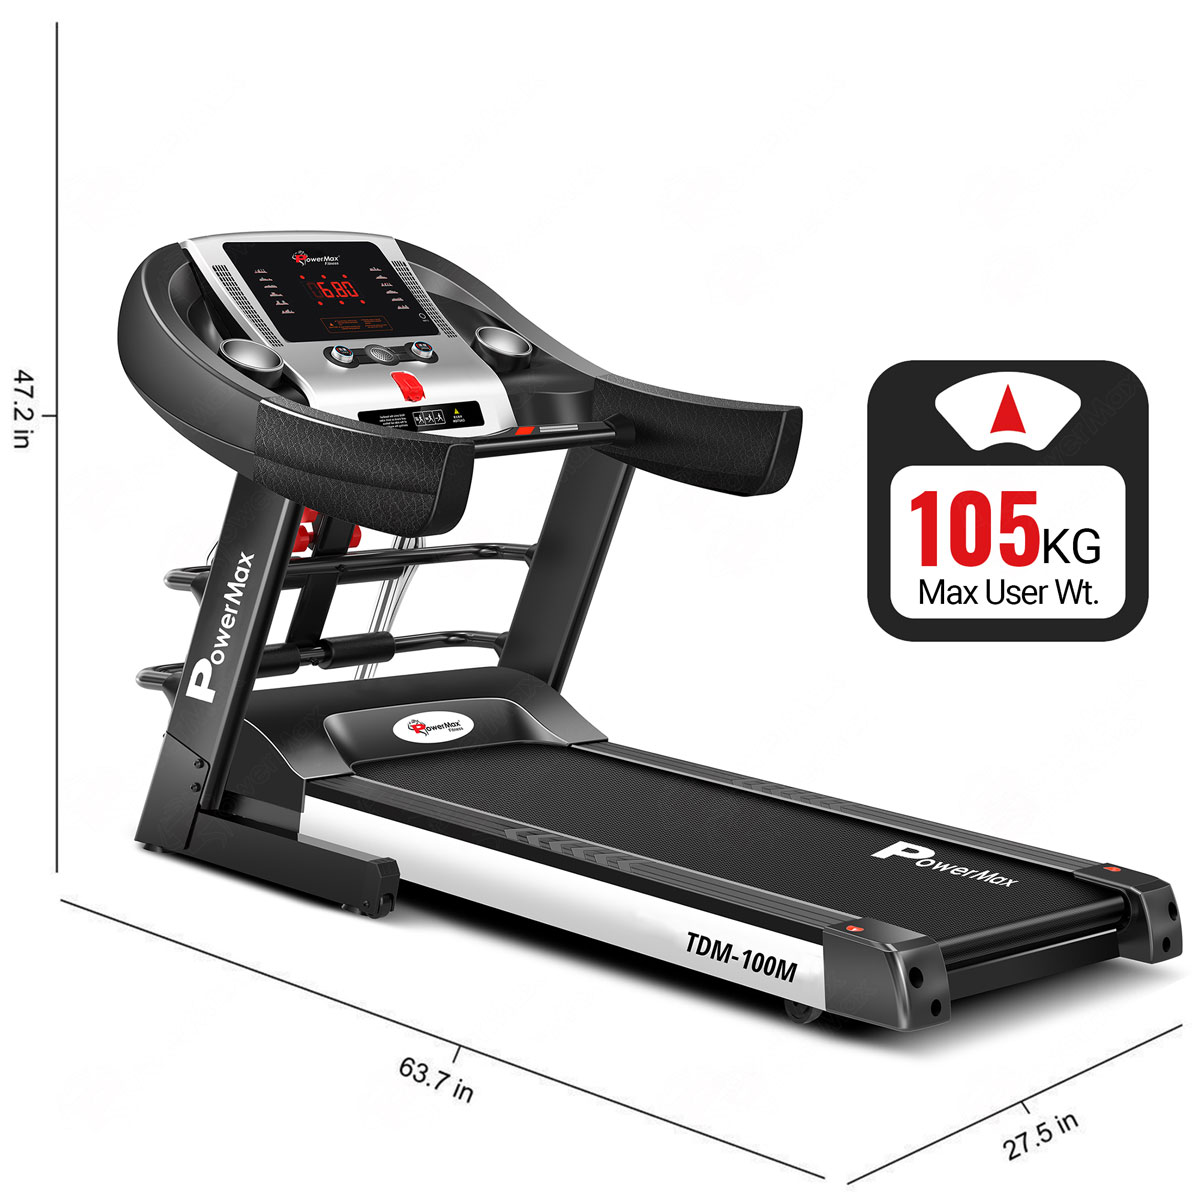 TDM-100M Semi-Auto Lubrication Multifunction Treadmill